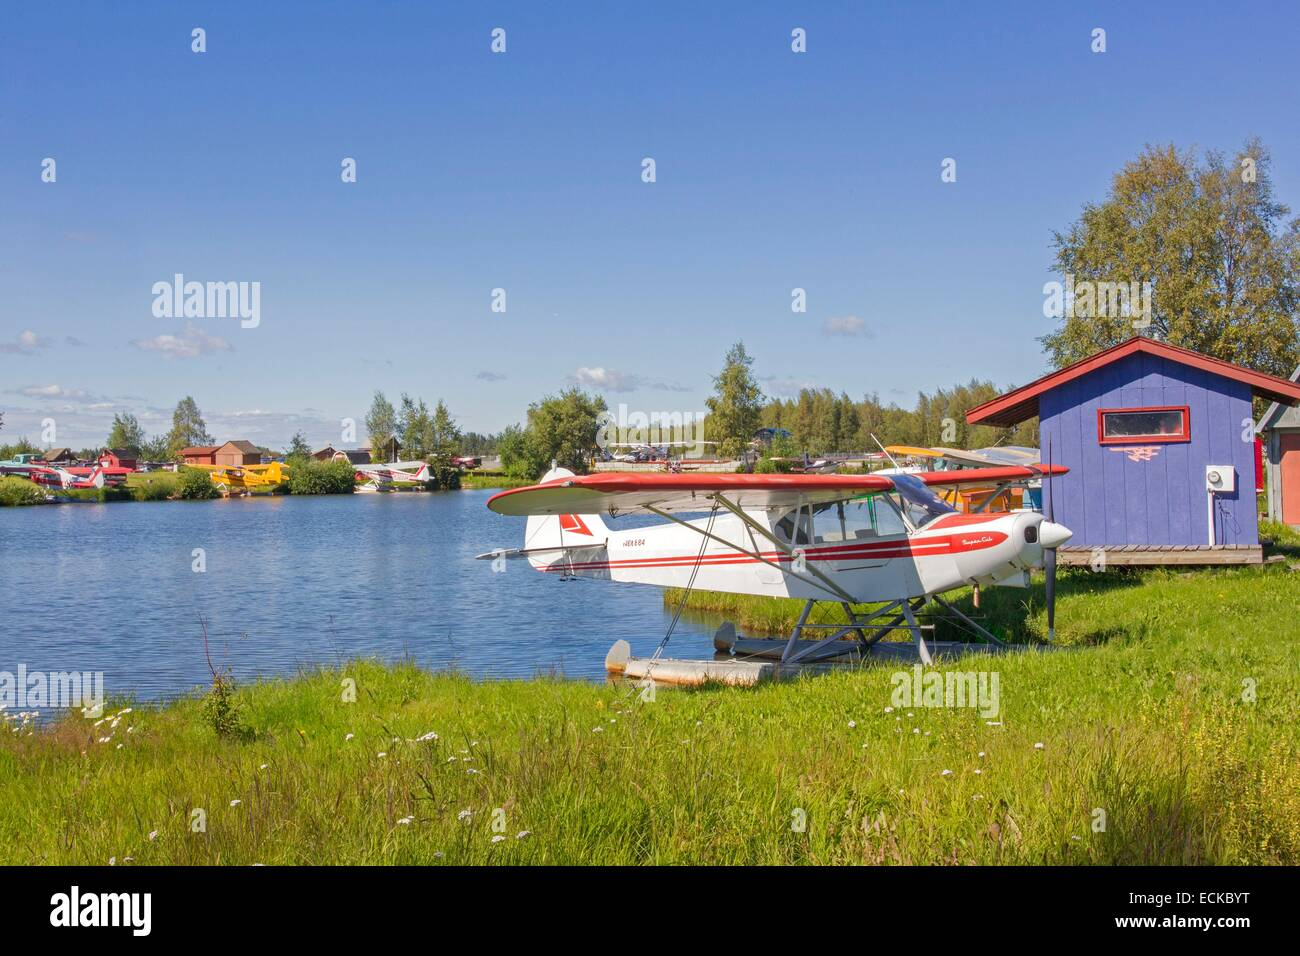 United States, Alaska, Anchorage, lake Hood, seaplane base - Stock Image